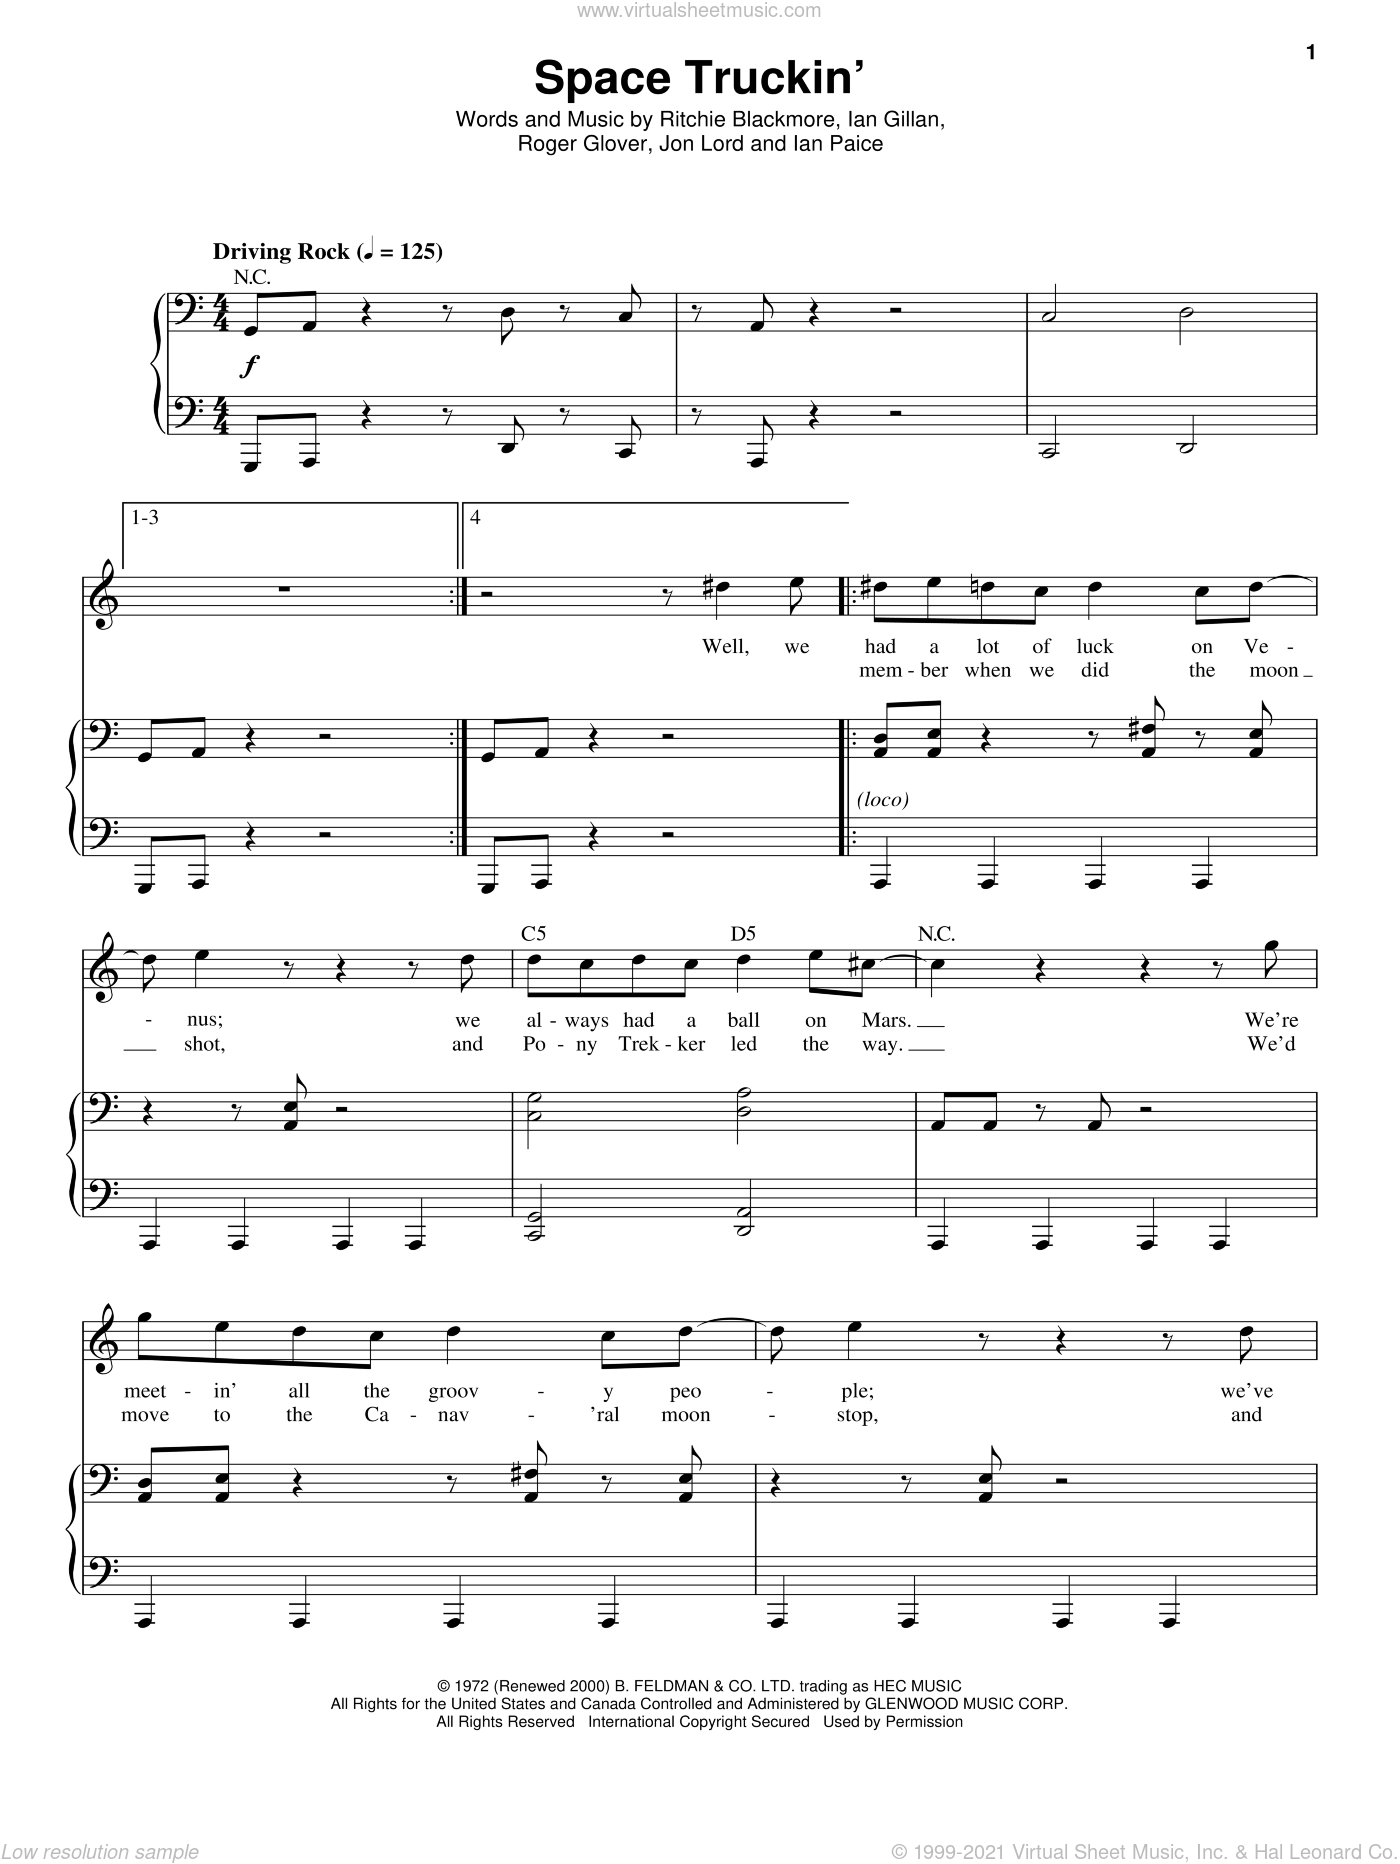 Space Truckin' sheet music for voice and piano by Roger Glover